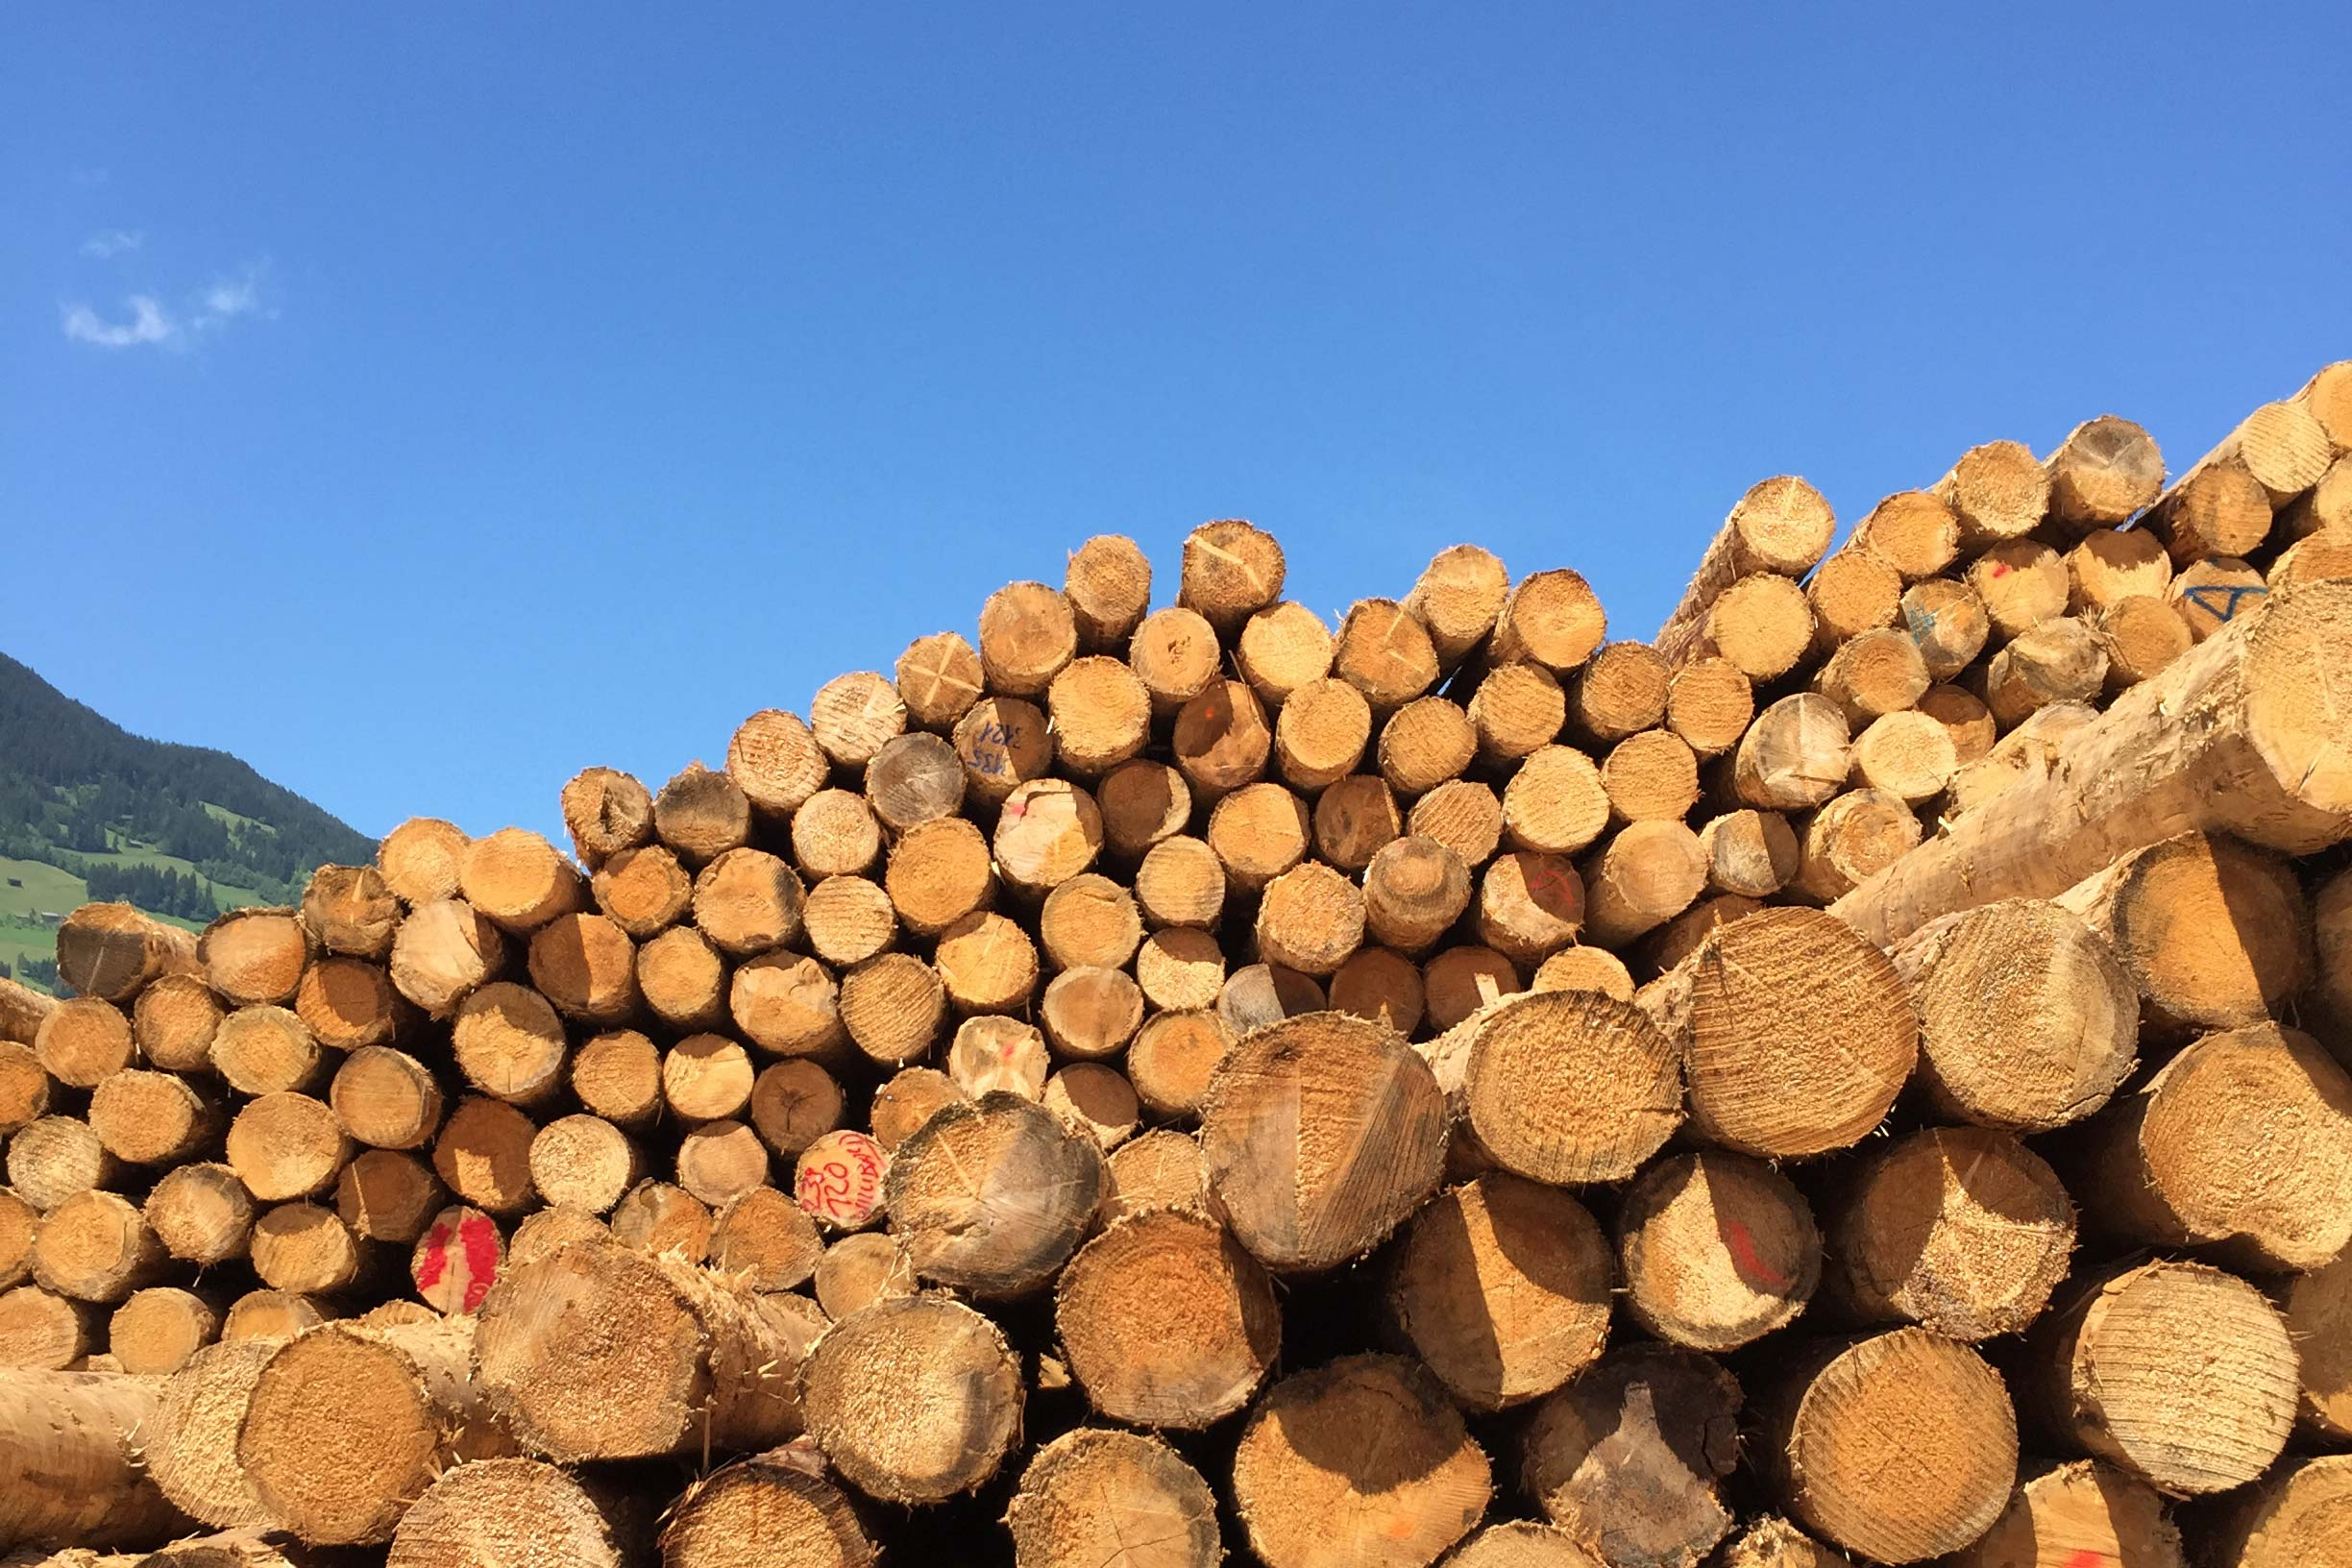 Softwood logs stacked up at the timber yard that has been sourced sustainably